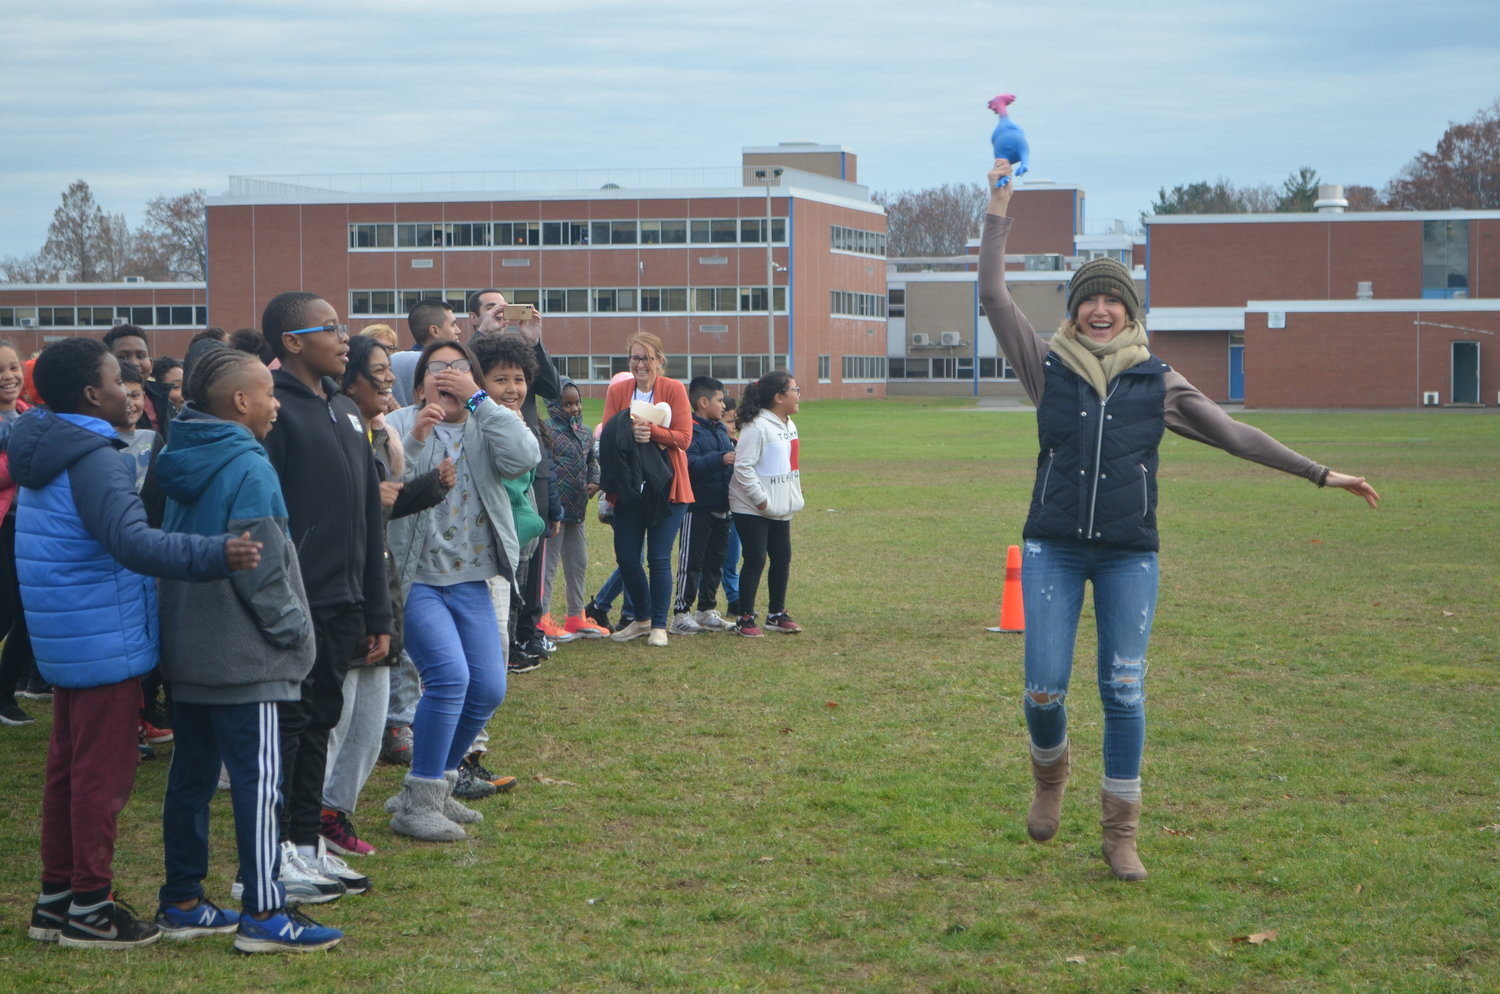 Michelle-Dionisio, a fourth-grade teacher at Brookside Elementary School, skipped down the field with a rubber chicken on Nov. 27 at the school's first Turkey Trot to benefit local food pantries for Thanksgiving.